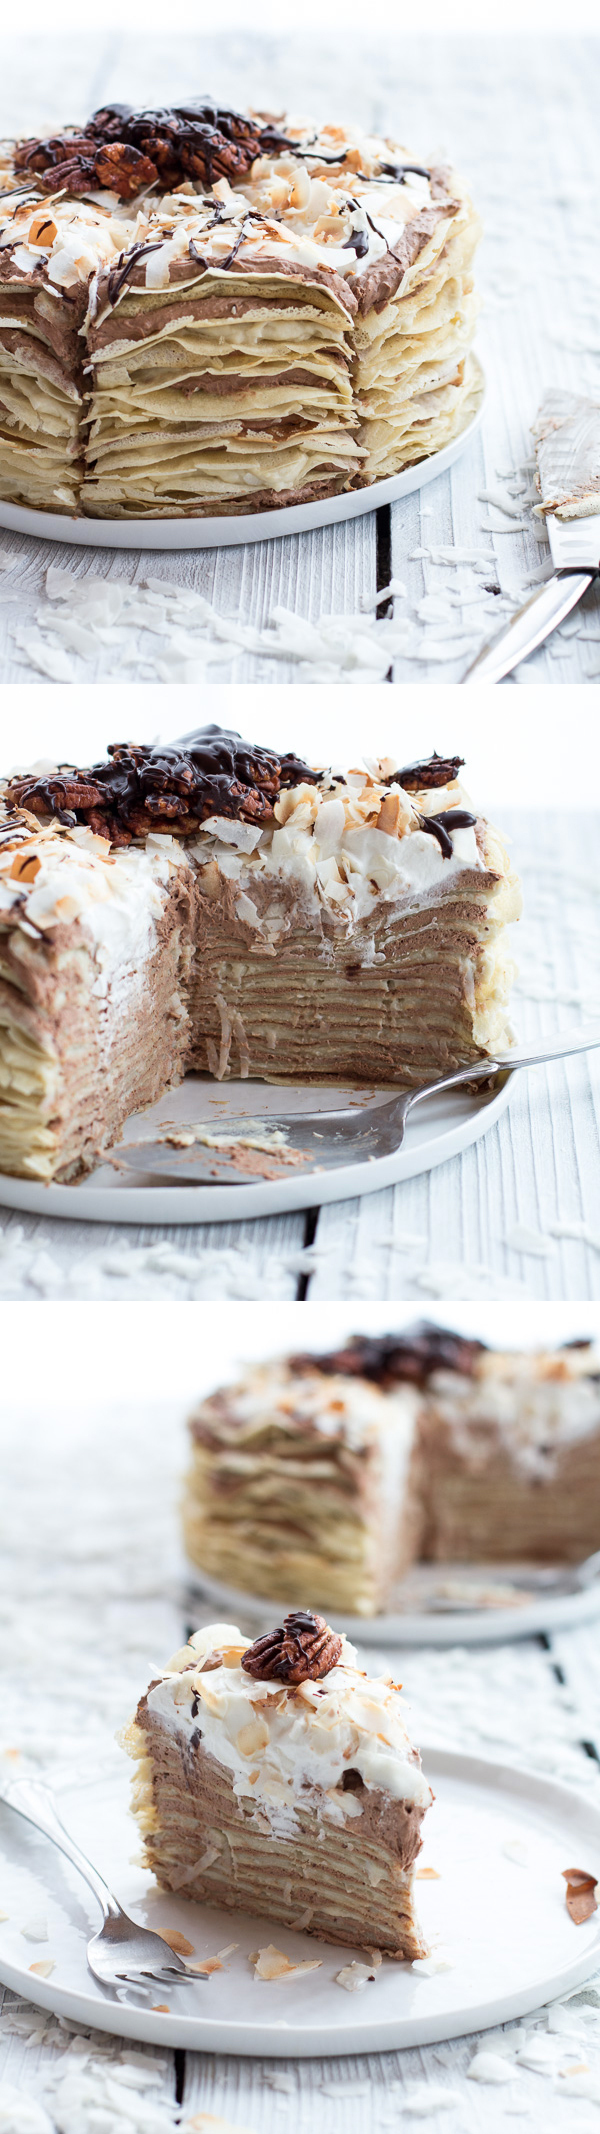 Coconut Cream Crepe Cake with Chocolate Mousse and Rum!